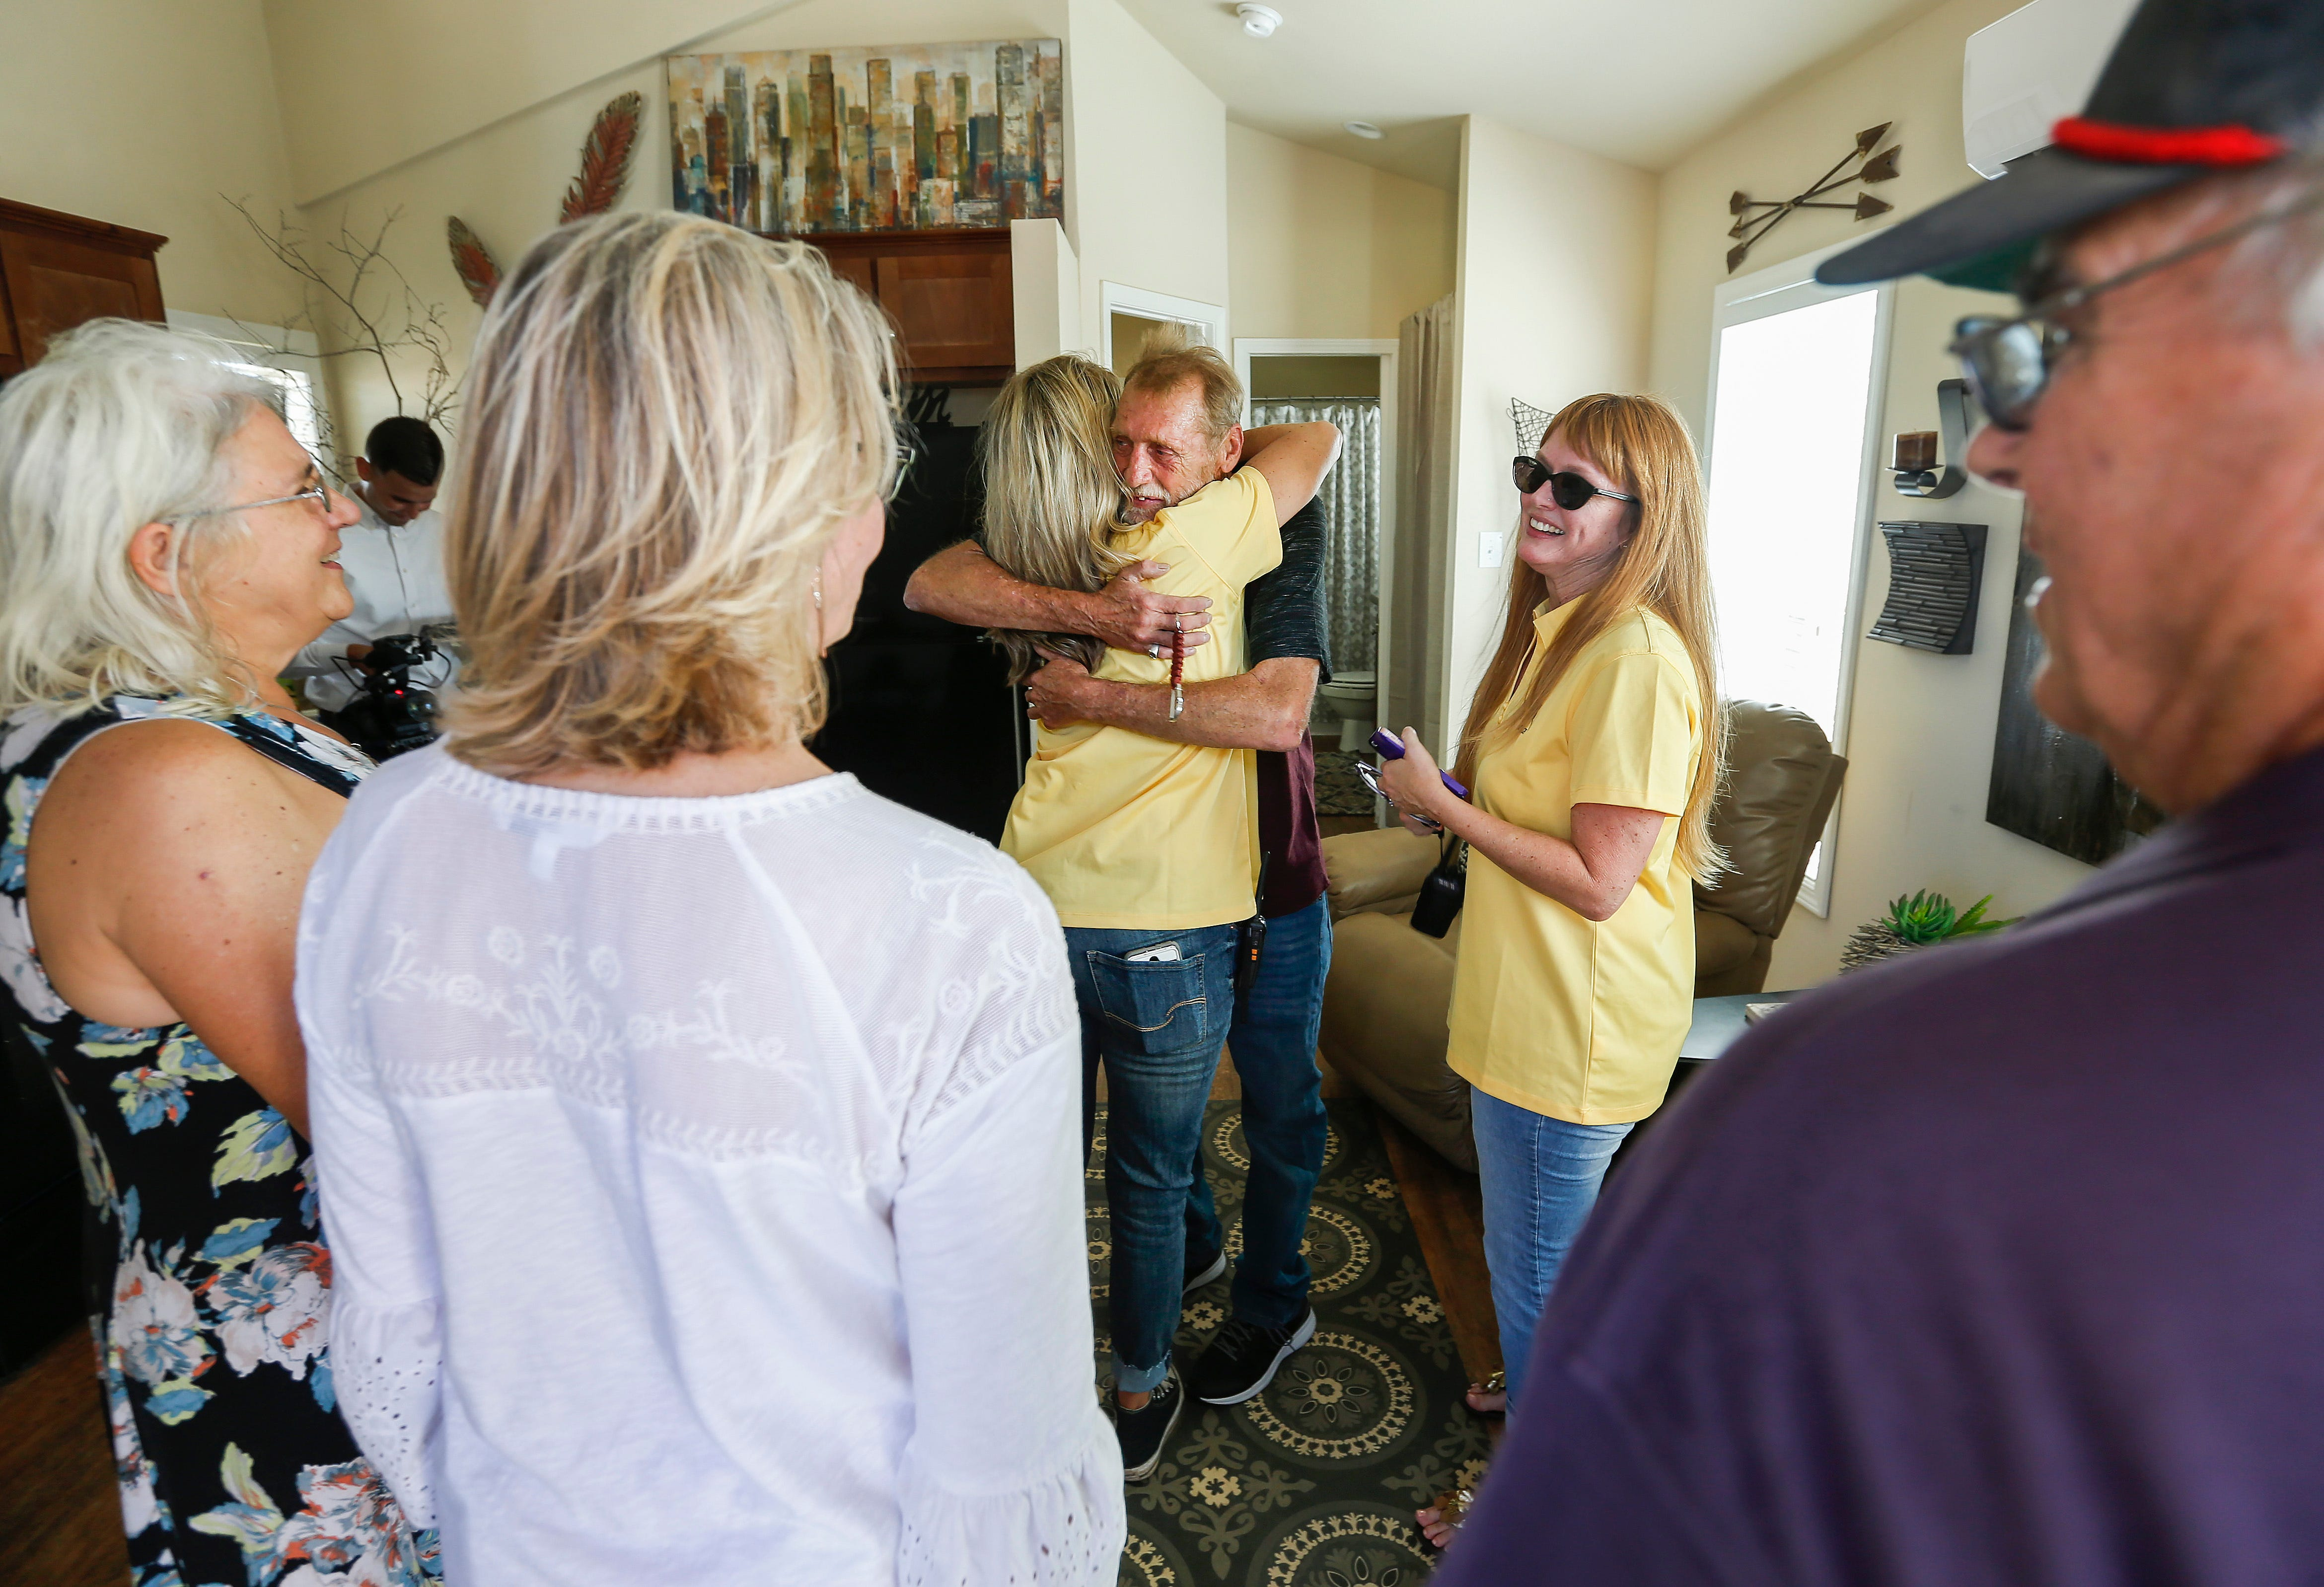 Tommy Yarberry hugs Cherie Roderick after walking into his new home during the Eden Village Grand Opening Ceremony on Tuesday, Aug. 28, 2018. Yarberry is the first resident to move into the tiny home community.